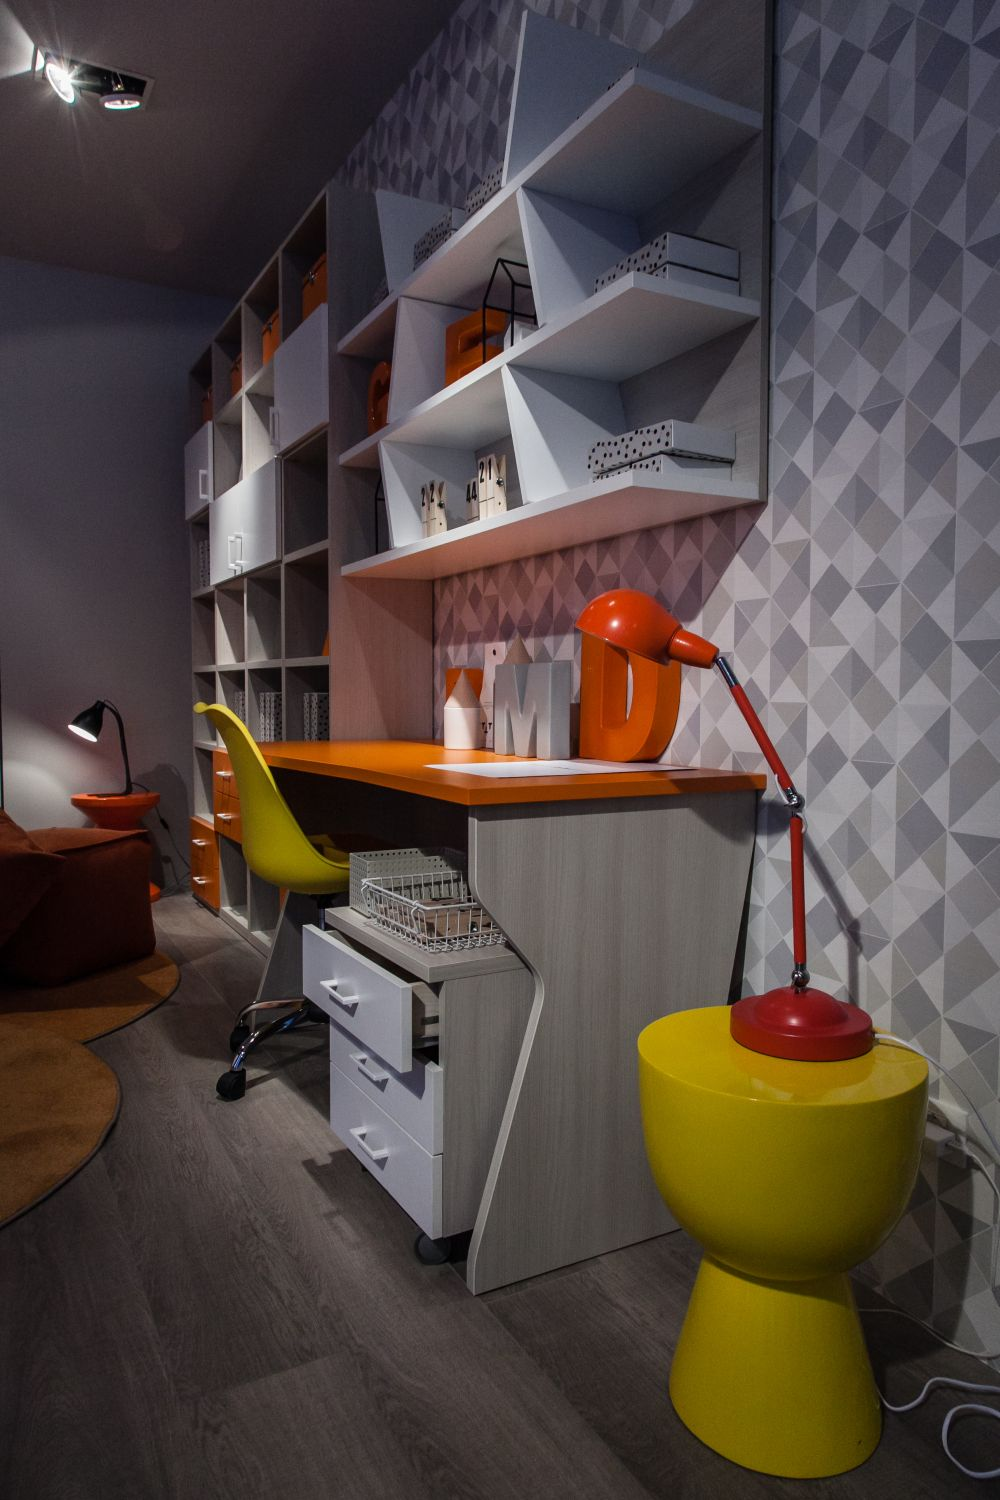 Bold colors and fun shapes can play a key role in making a desk look appealing for kids